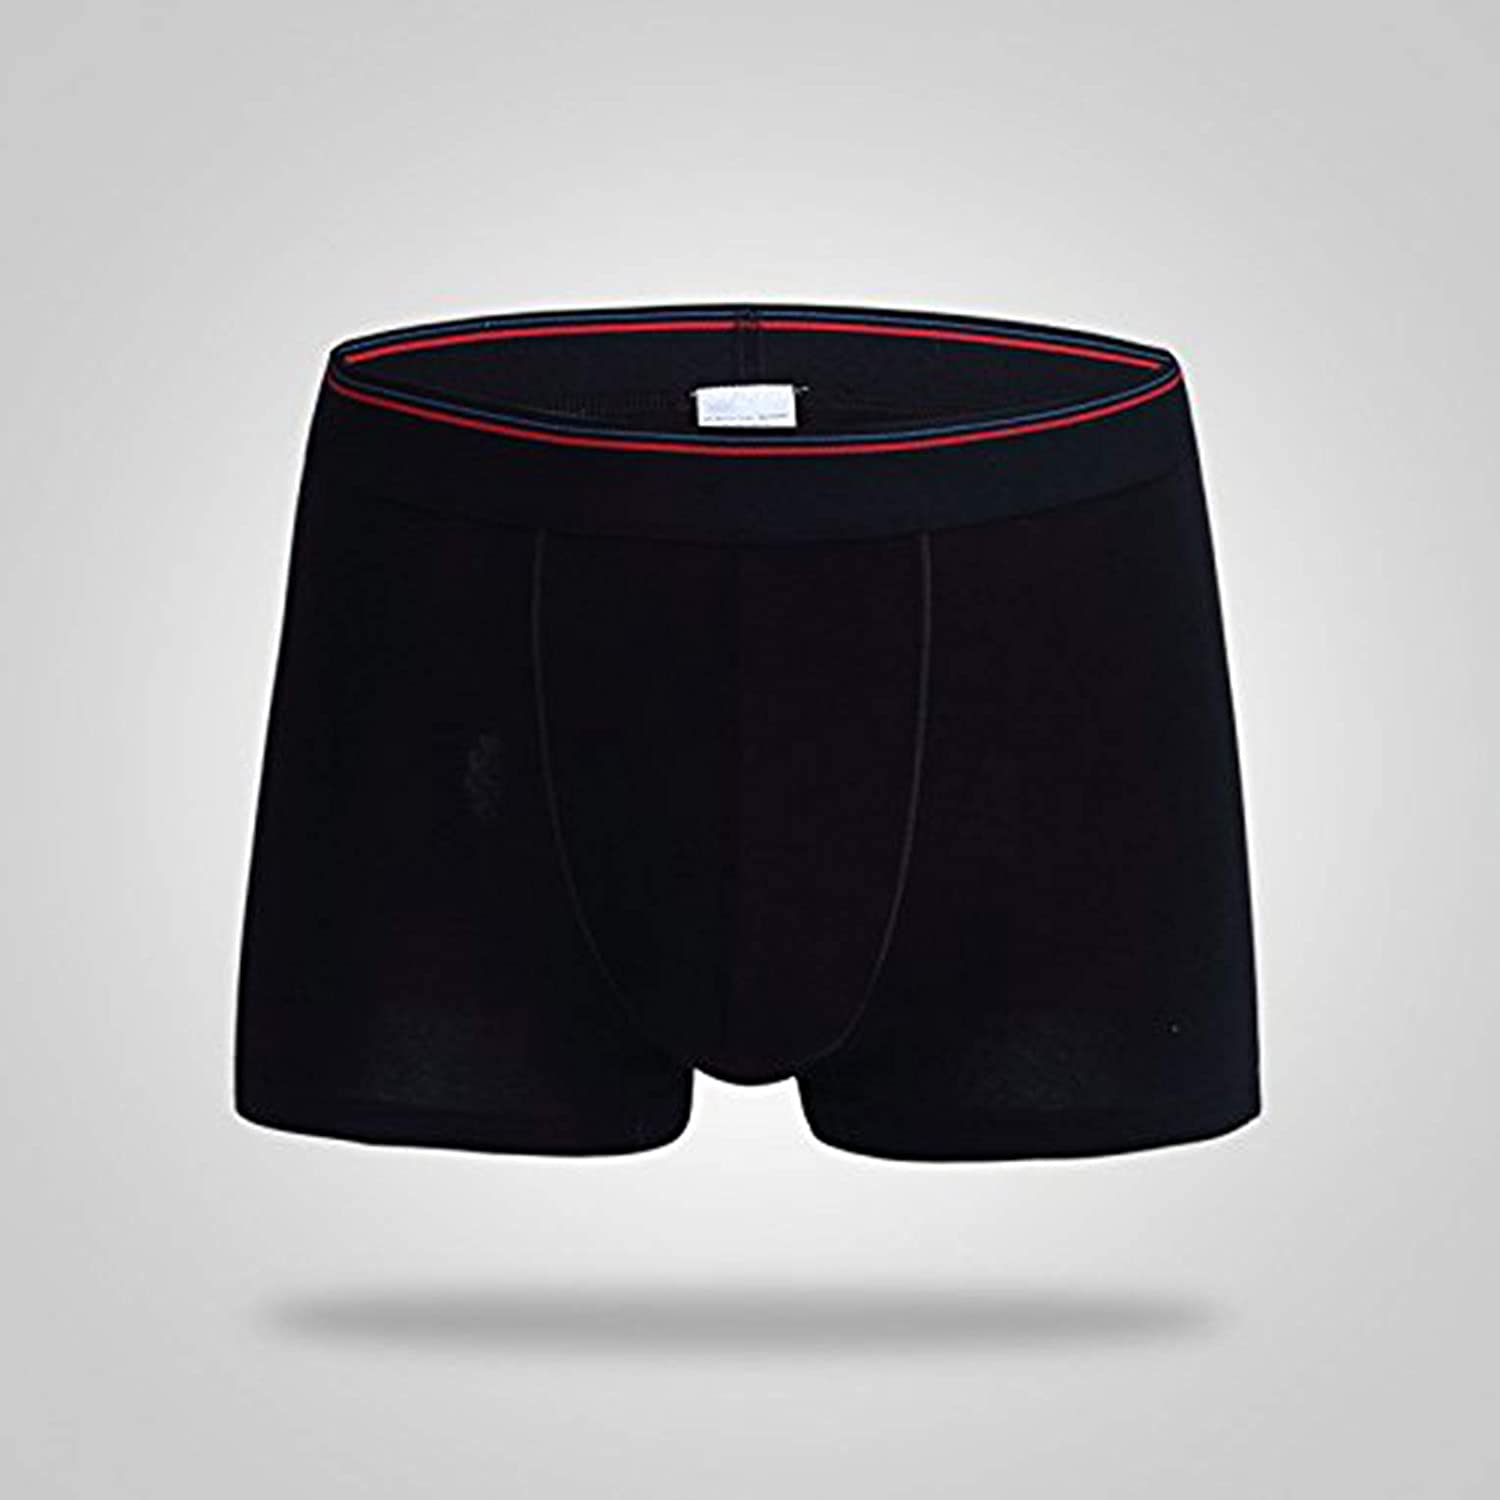 3X,Ash Mens Underwear Boxers Briefs Stretch Table Tennis Convex U Bag Light Weight Casual Breathable Soft